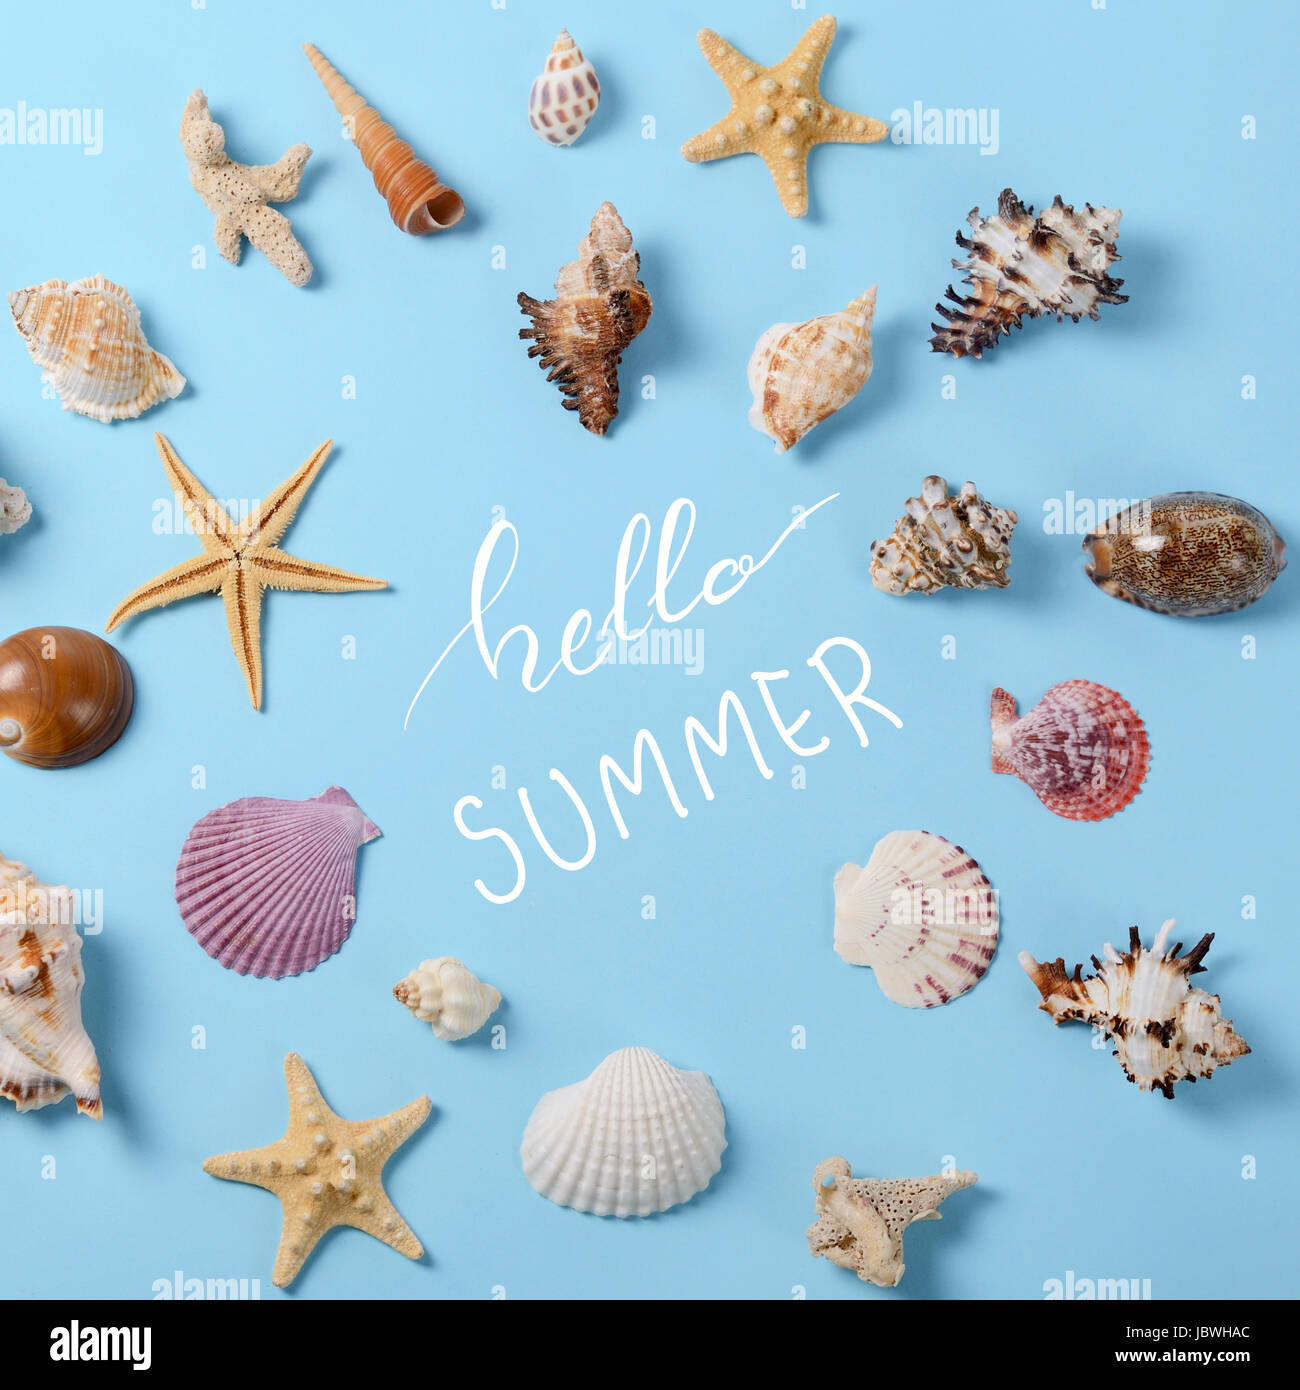 Creative layout made of different colorful seashells and greeting card - Stock Image